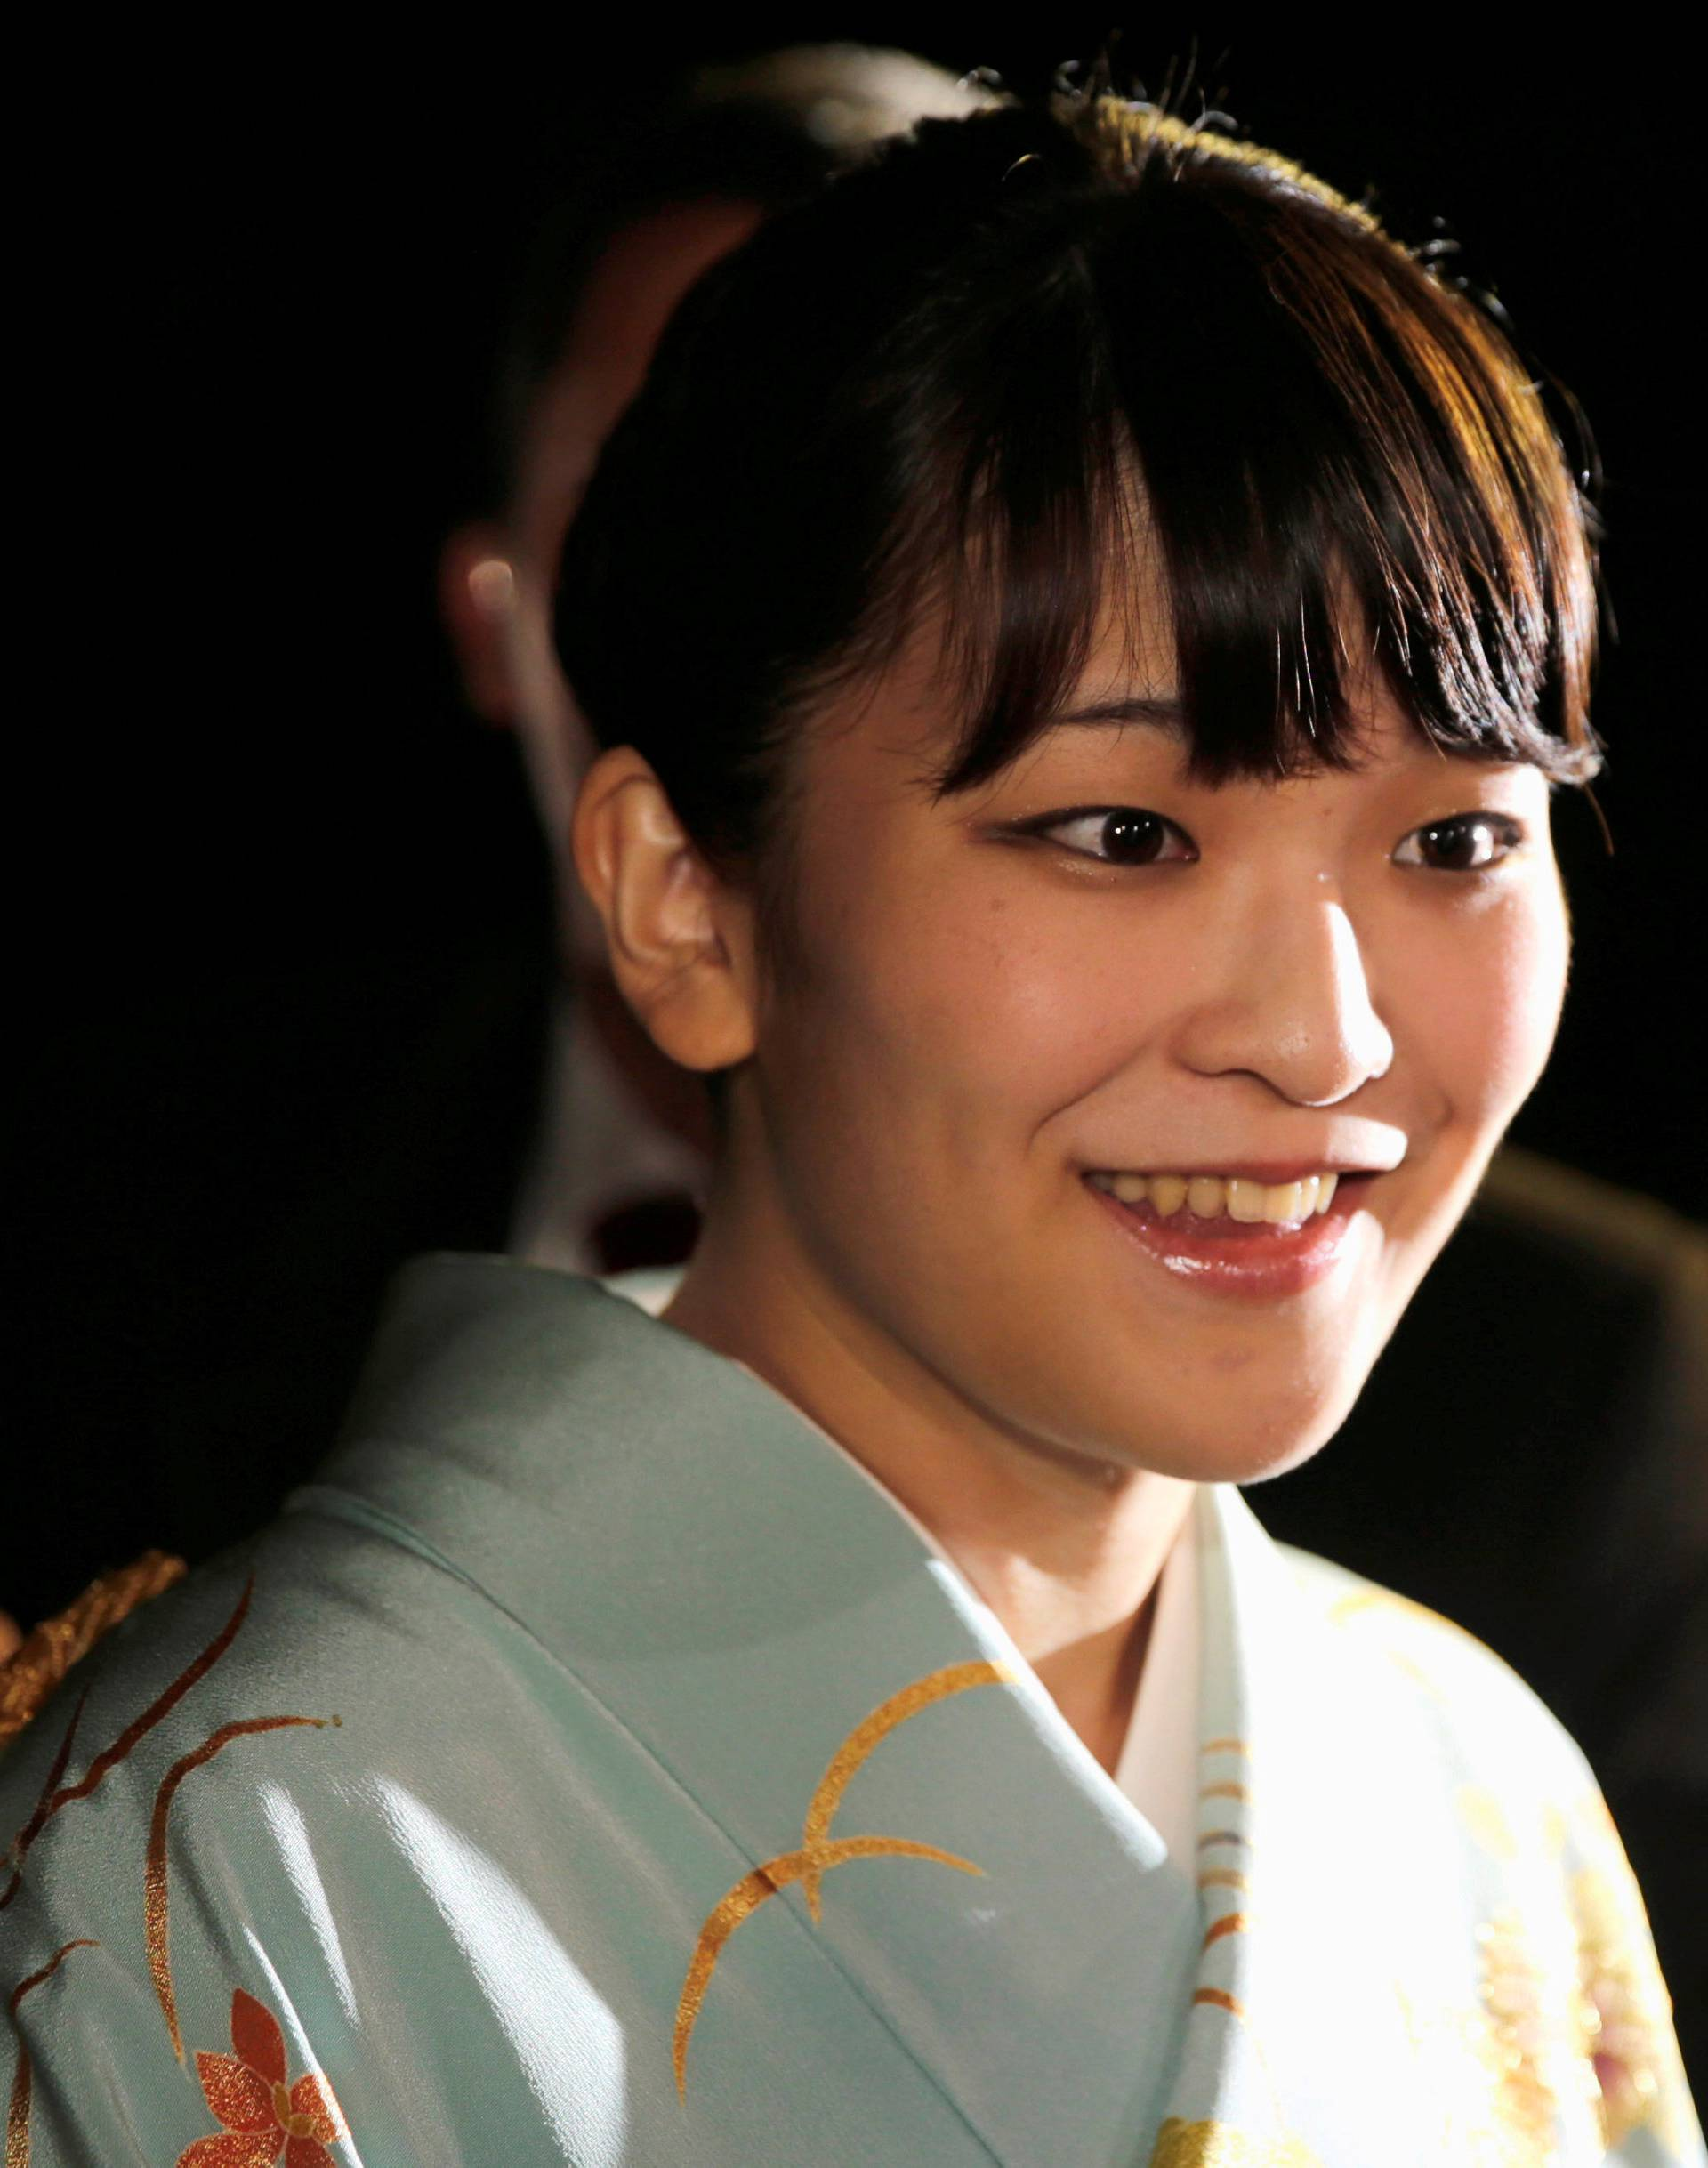 FILE PHOTO - Japan's Princess Mako arrives before a meeting with Paraguay's President Horacio Cartes at the presidential residence in Asuncion